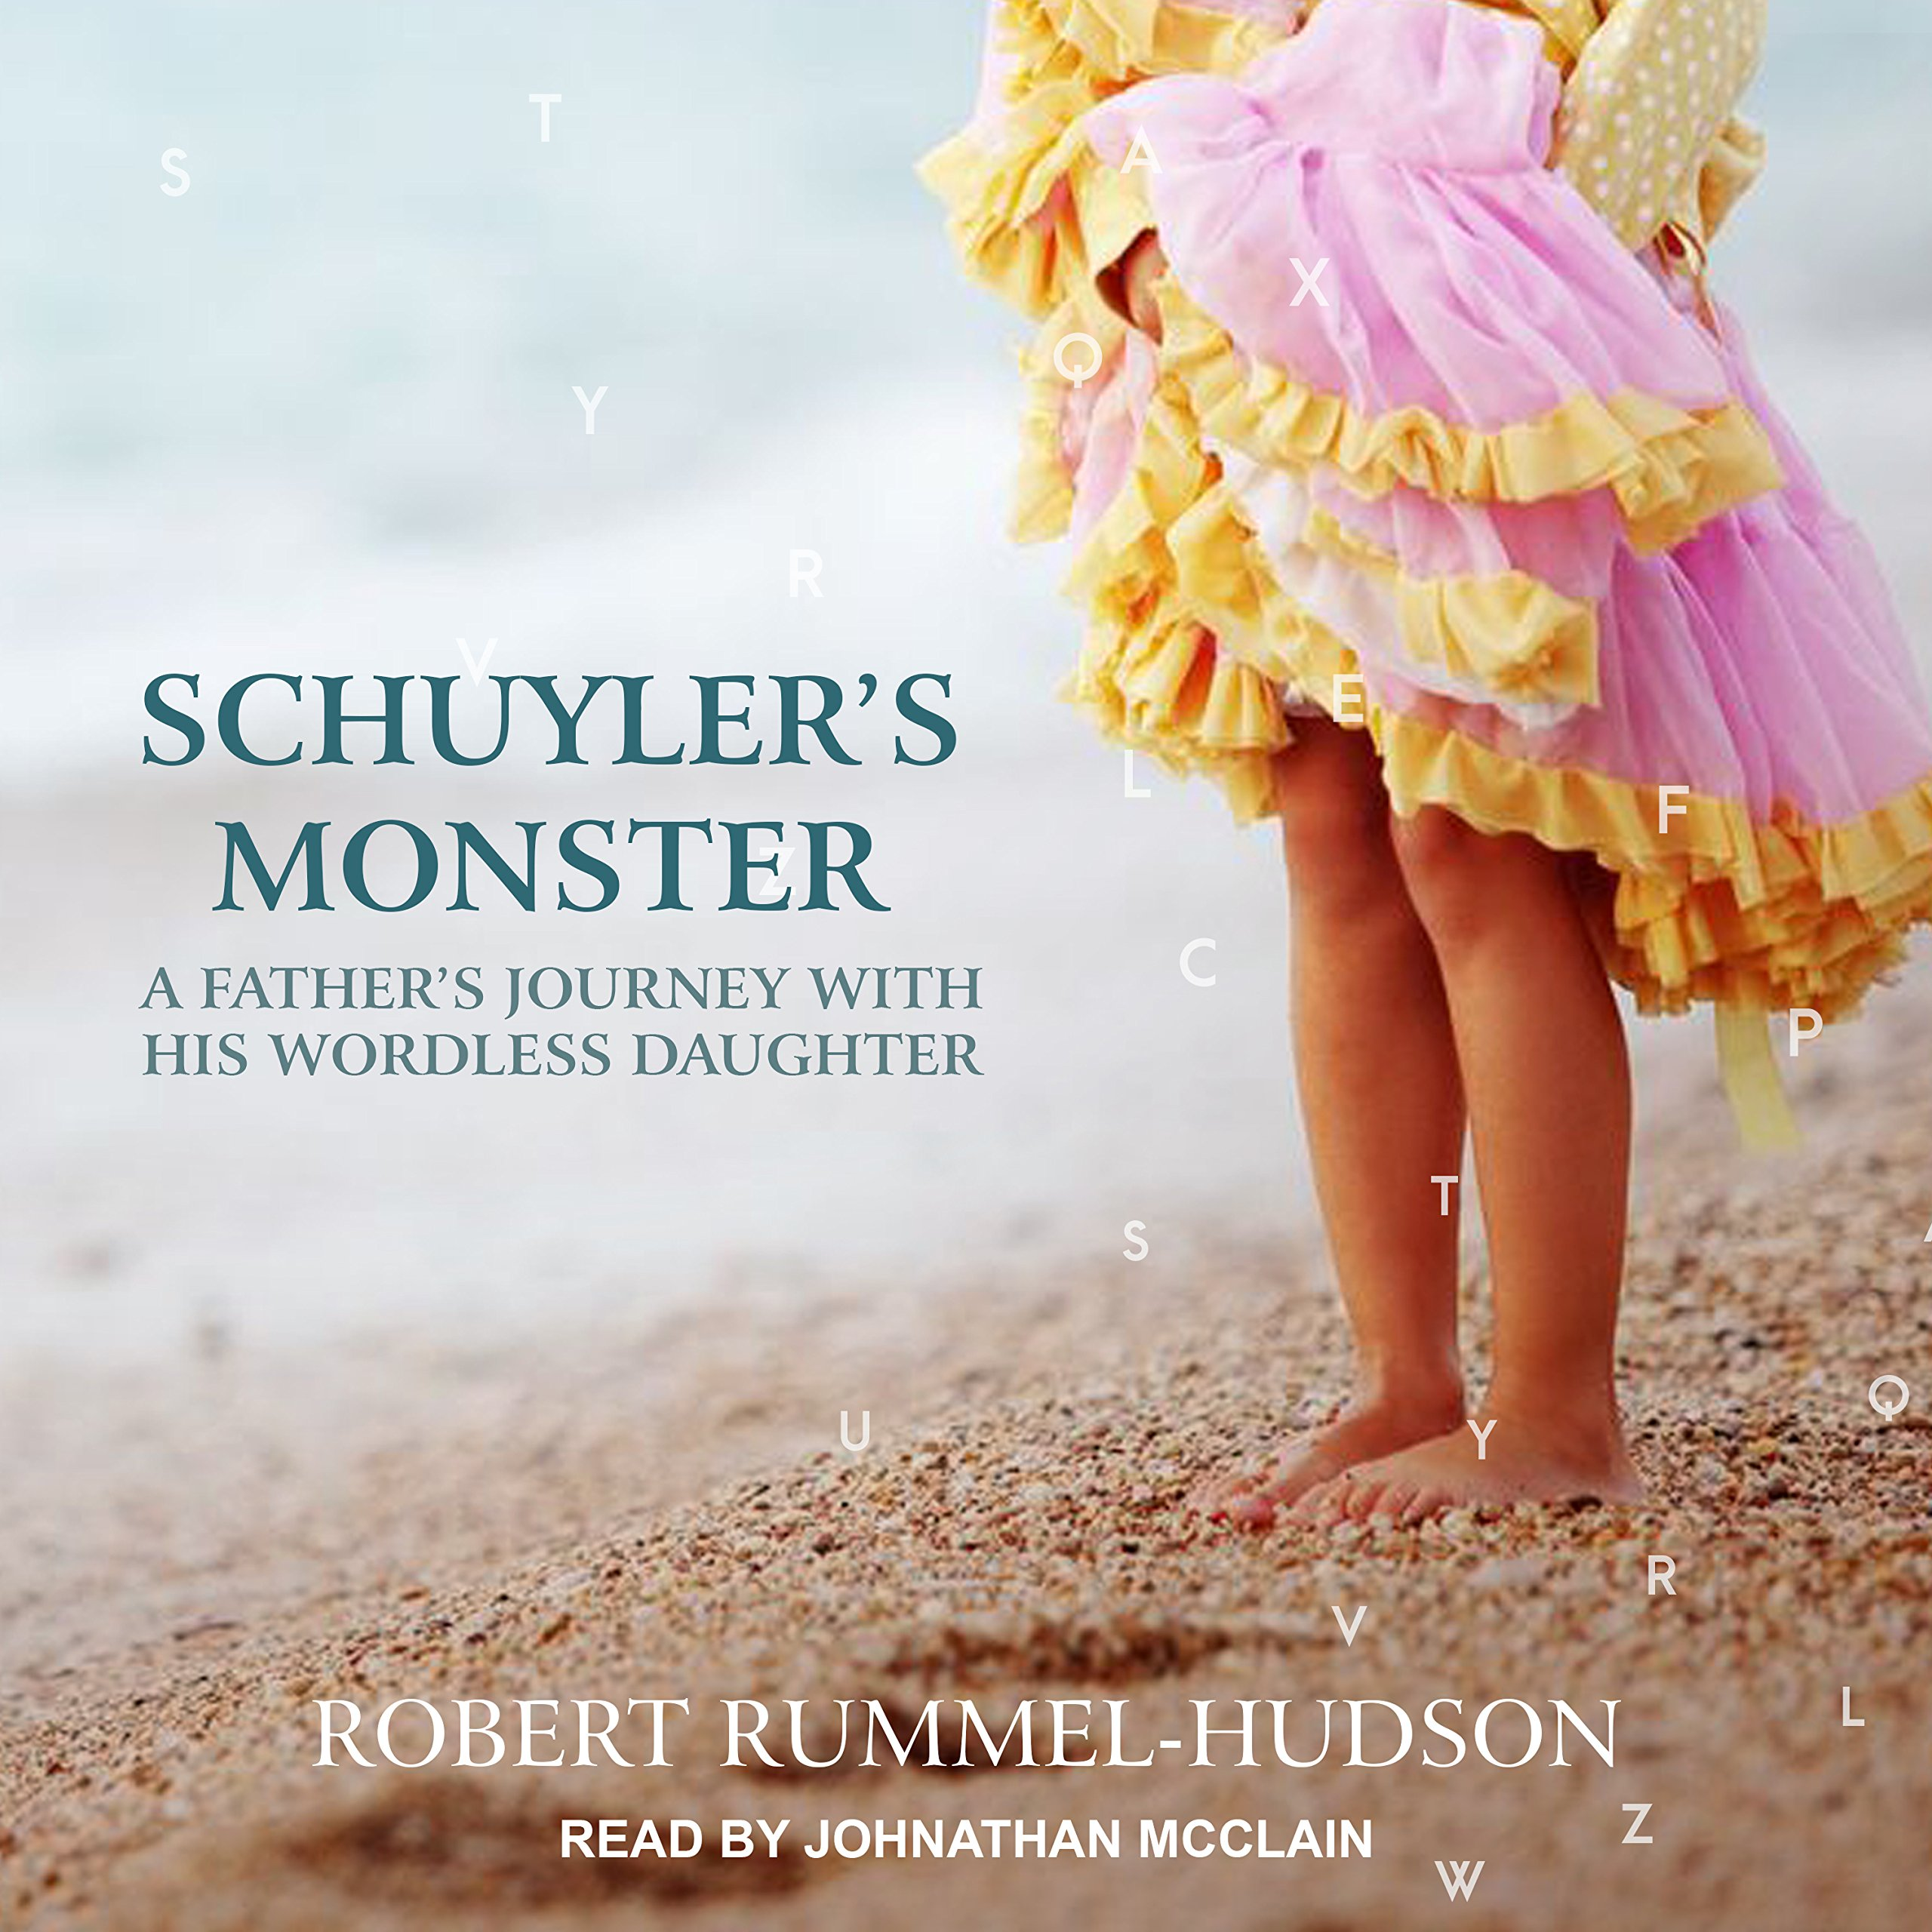 Schuylers Monster A Fathers Journey With His Wordless Daughter By Robert Rummel Hudson